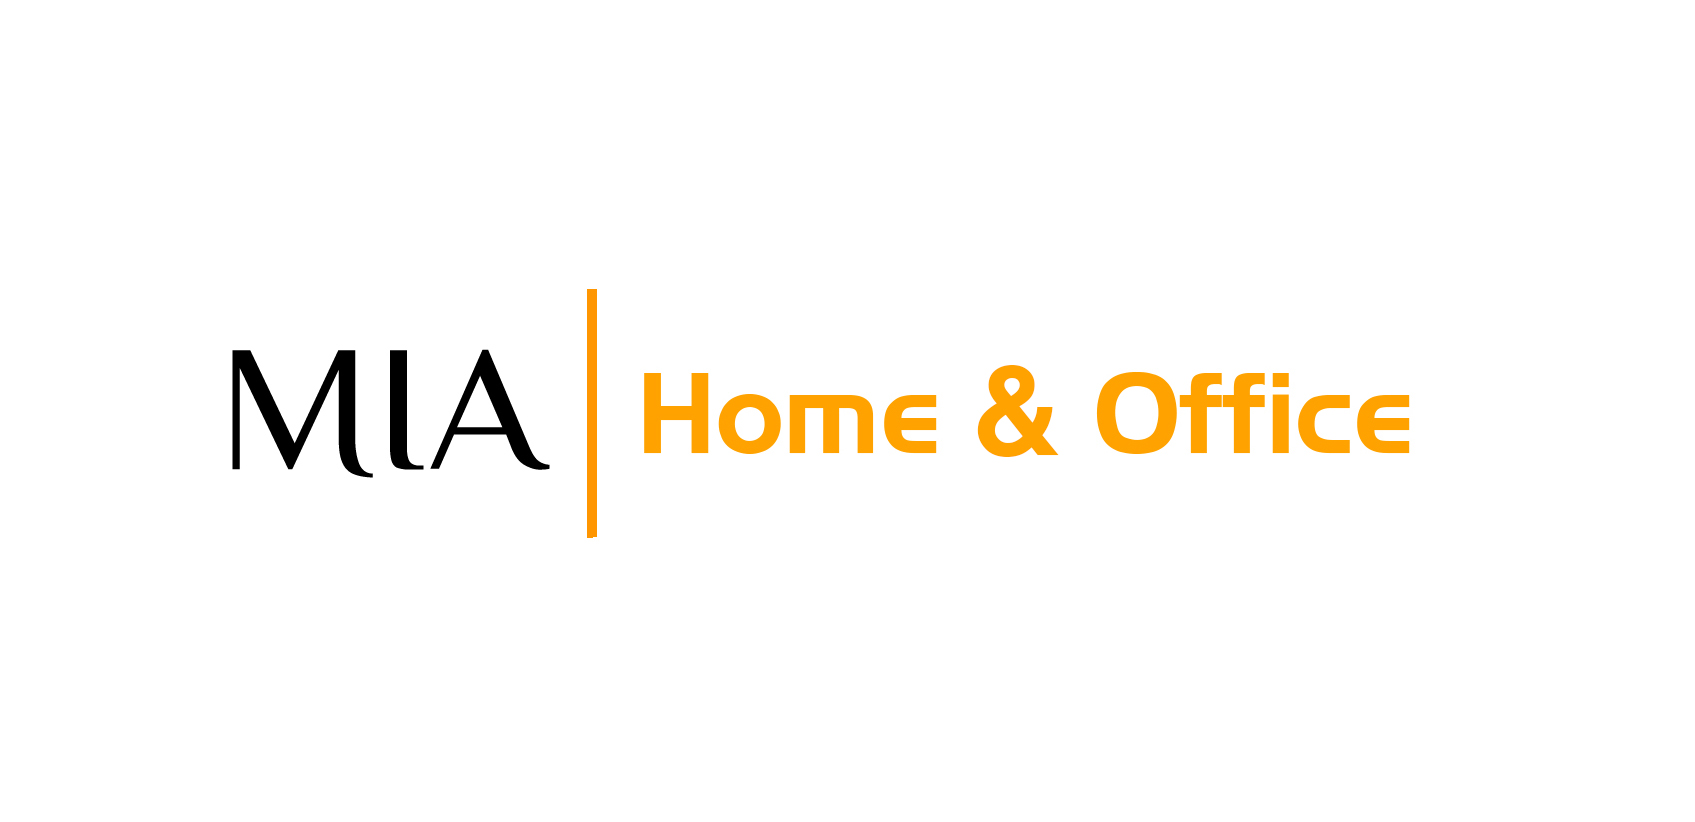 Mia Homes & Office